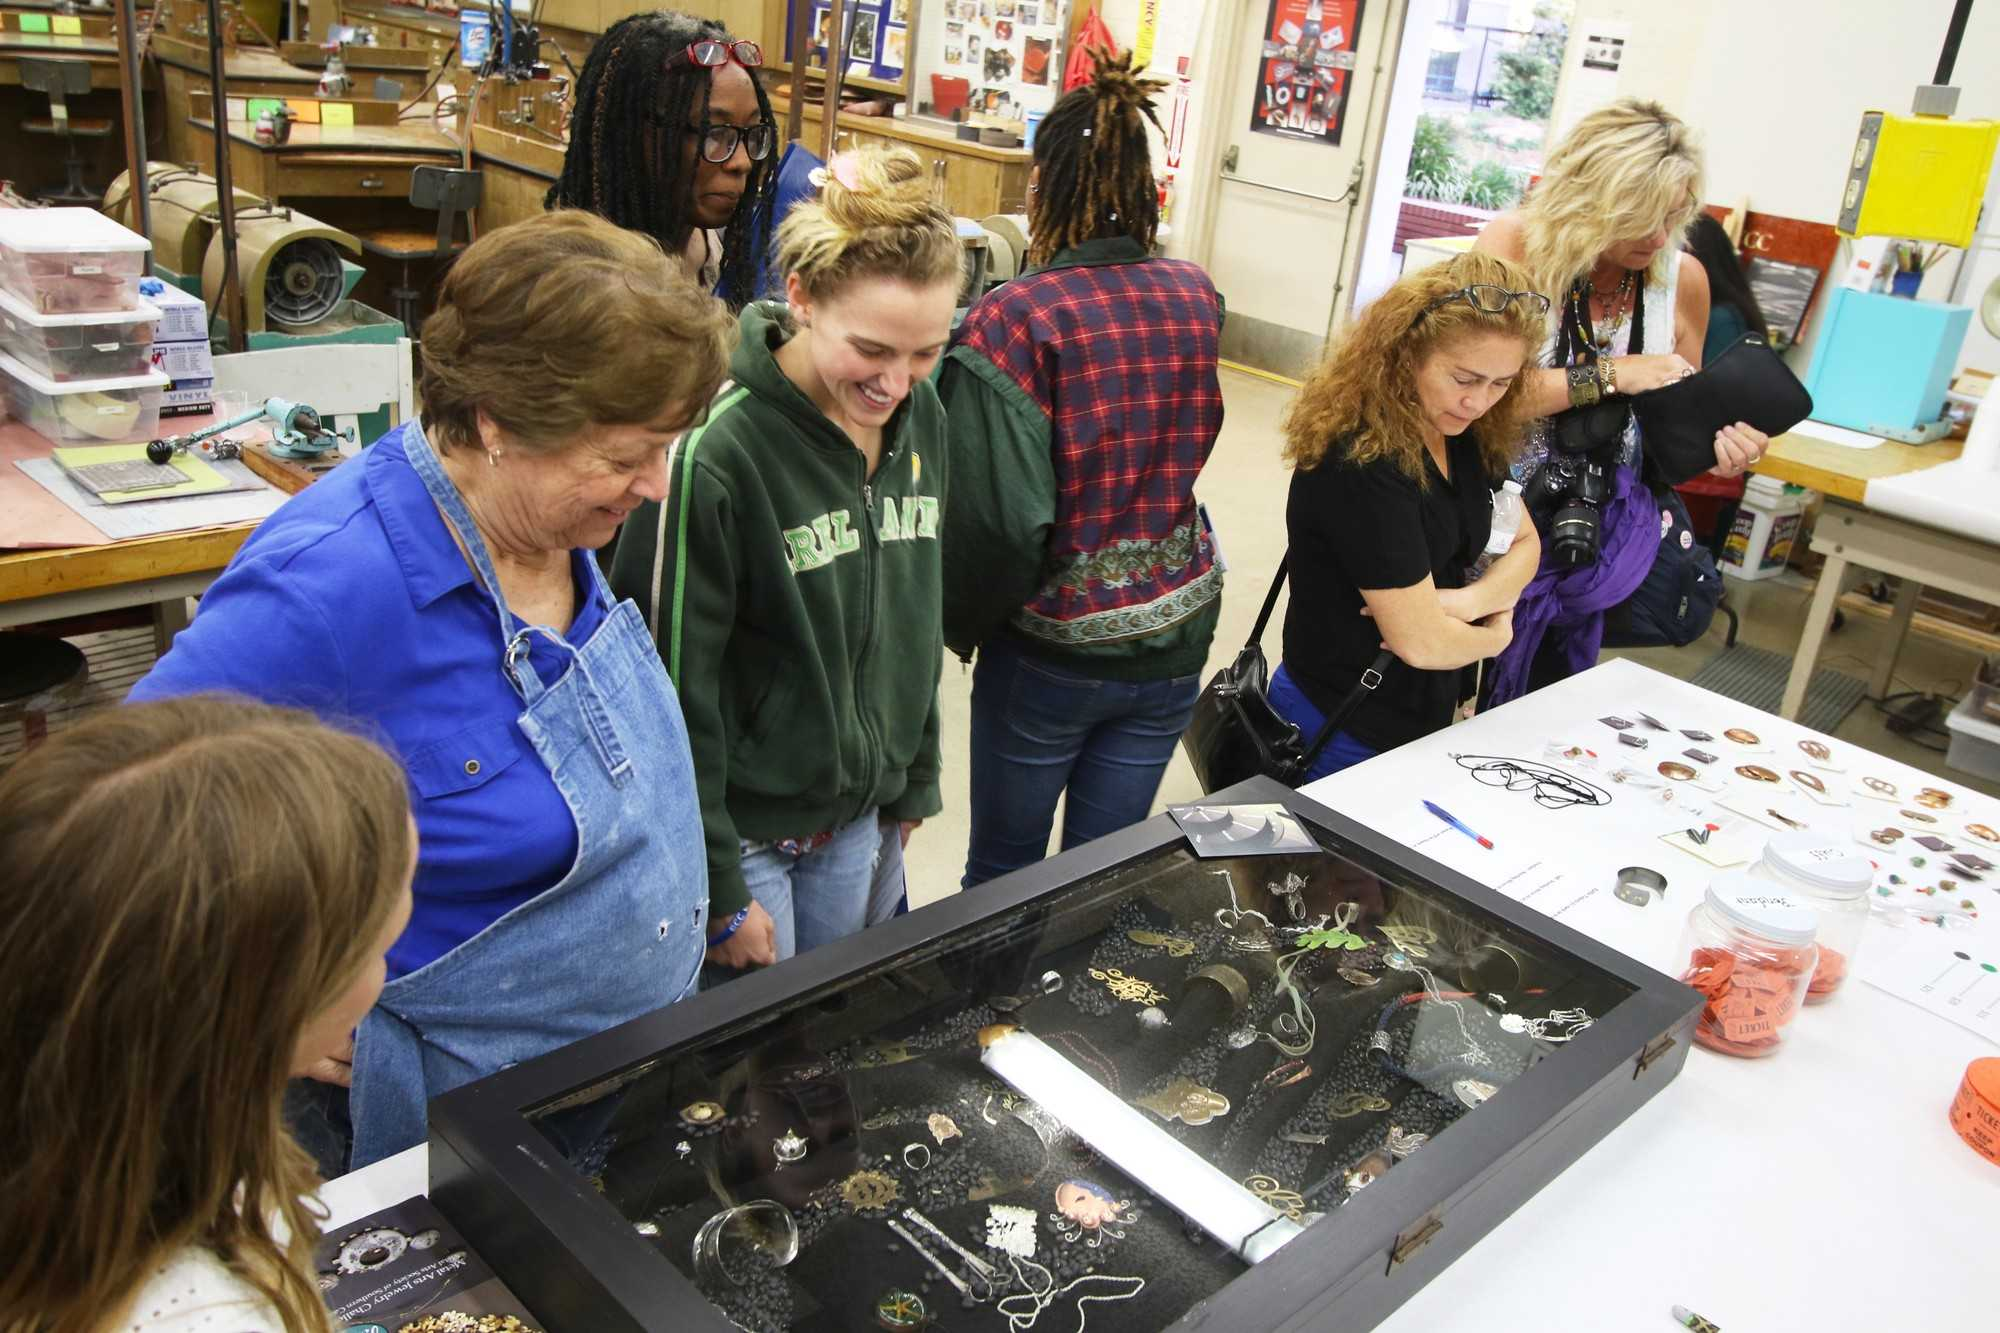 Open House for Fine Arts Division displays arts students' all-around talent